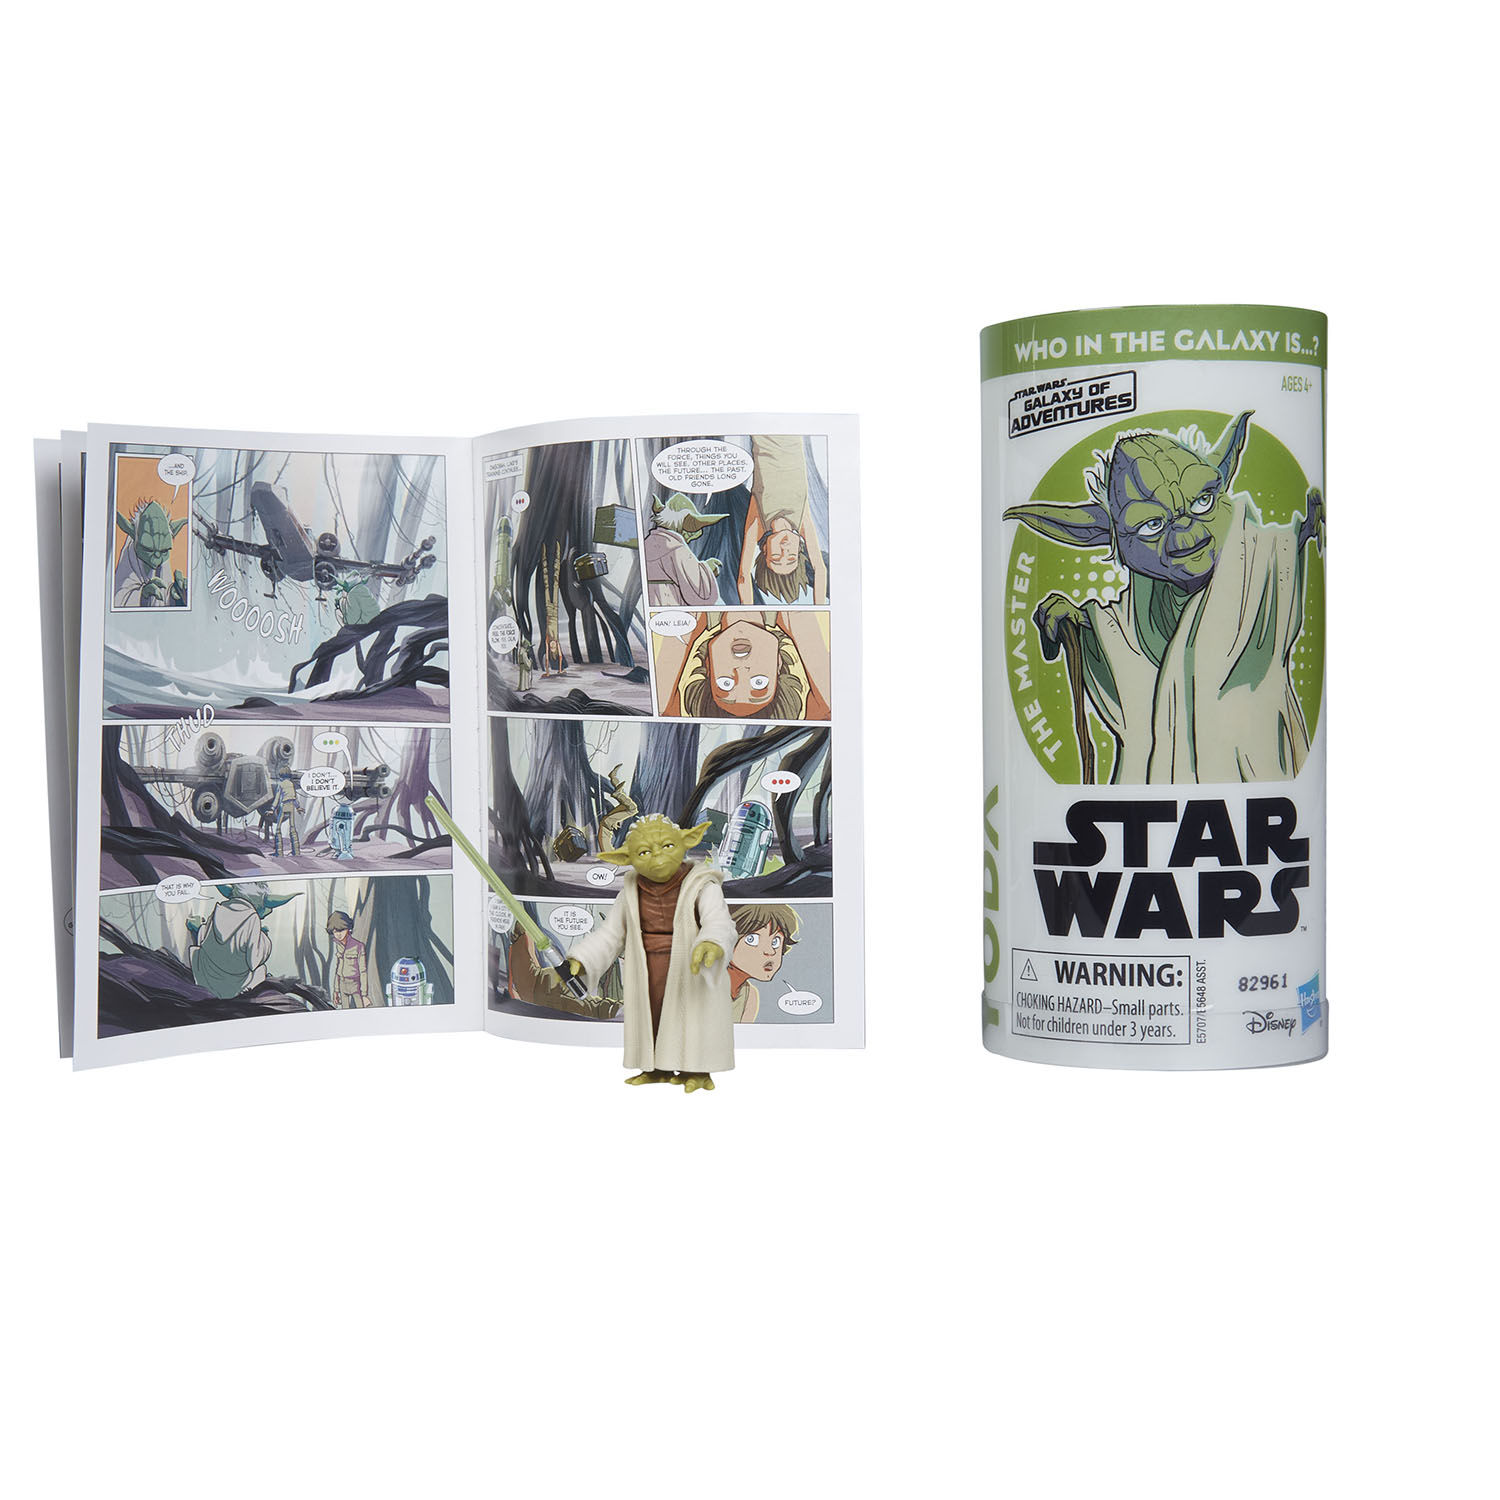 hasbro reveals new toy line for star wars galaxy of. Black Bedroom Furniture Sets. Home Design Ideas